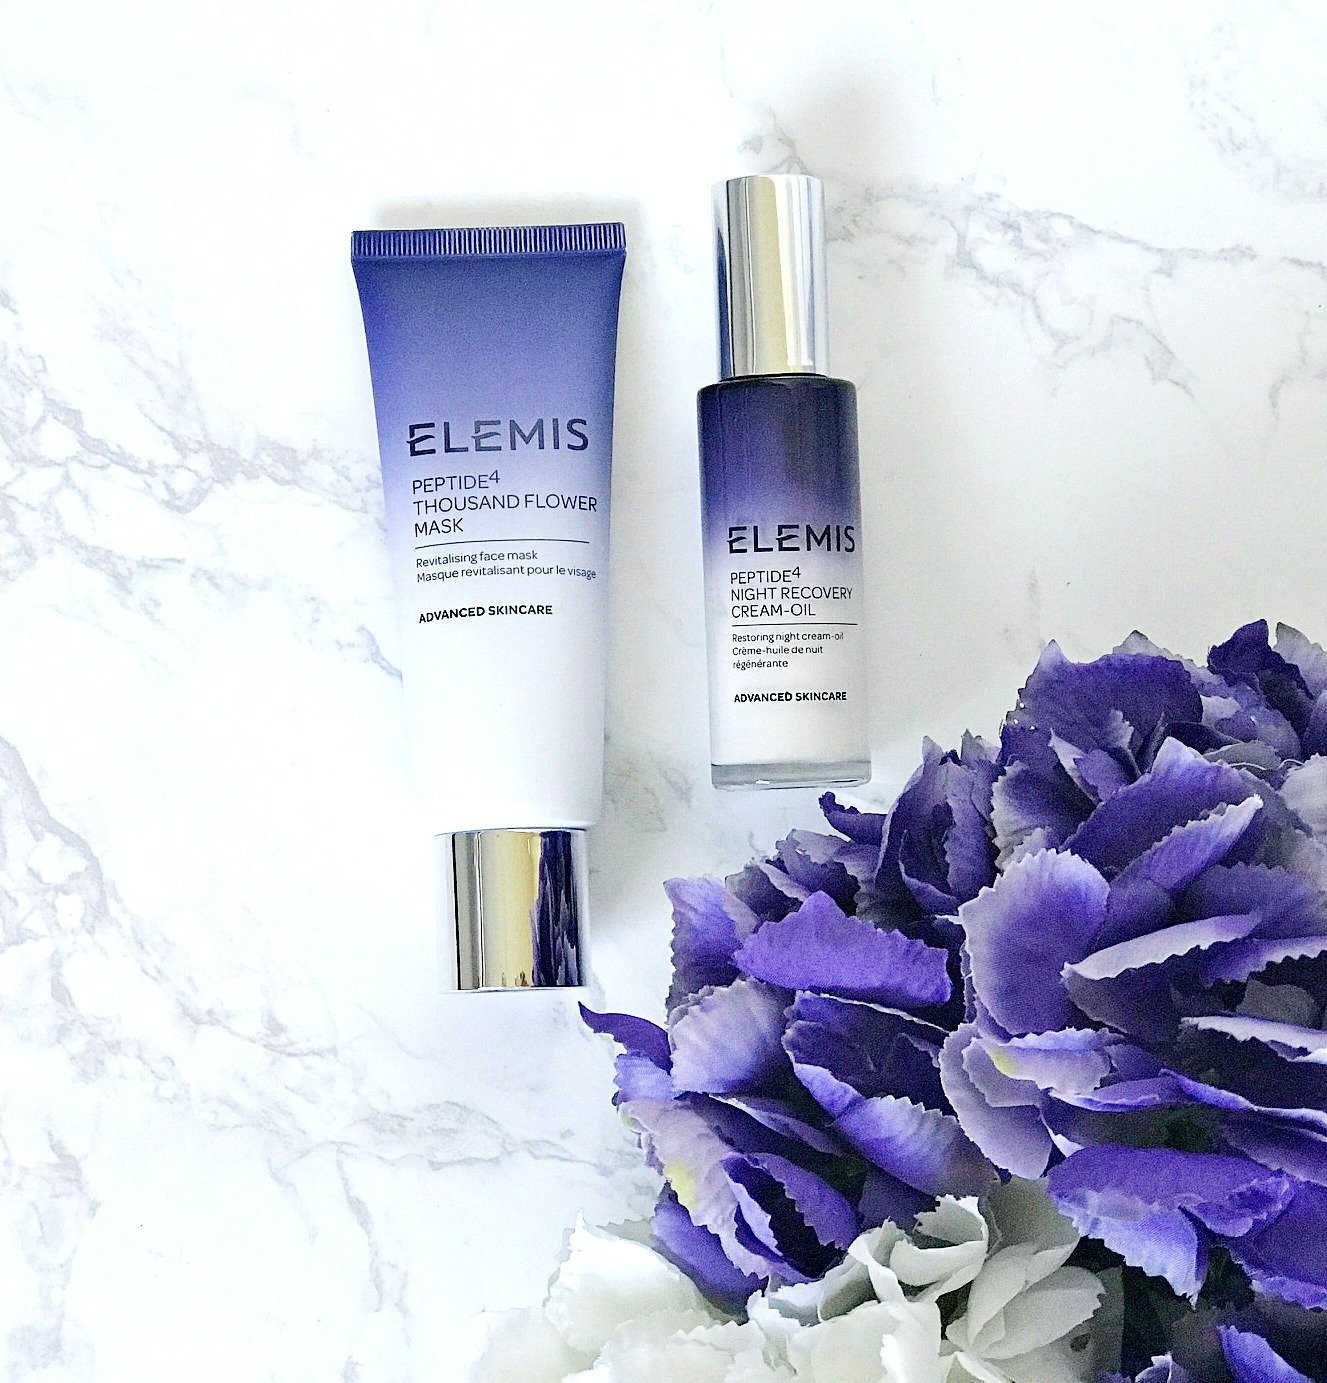 Elemis Peptide Thousand Flower Mask Review, Elemis Night Recovery Cream-Oil Review